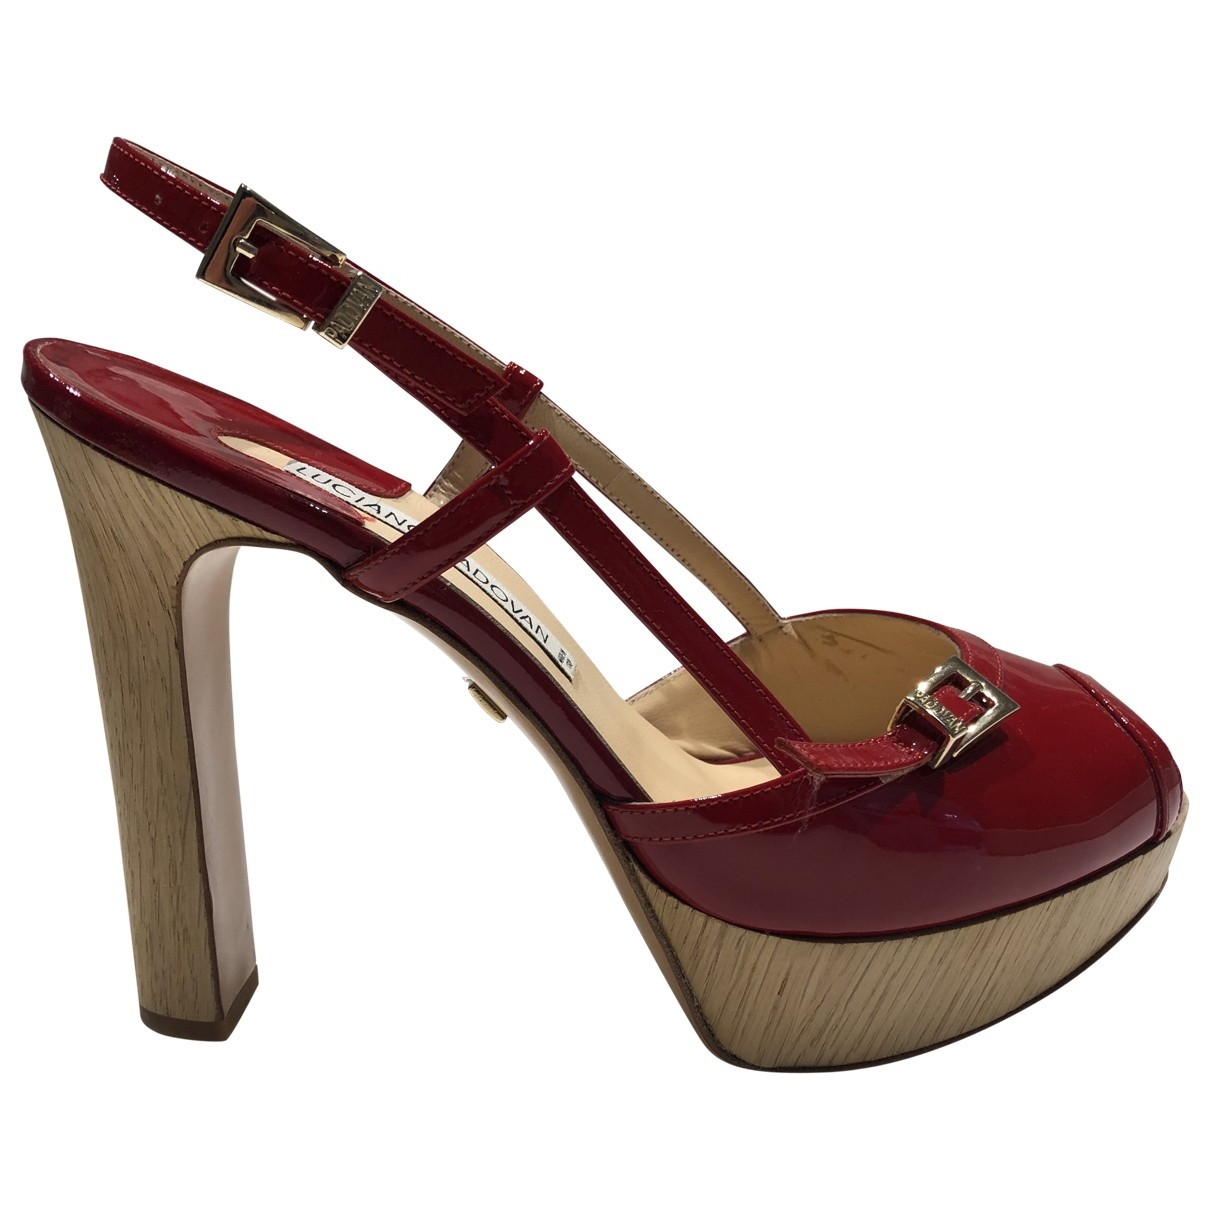 Luciano Padovan \N Red Patent leather Heels for Women 38 EU